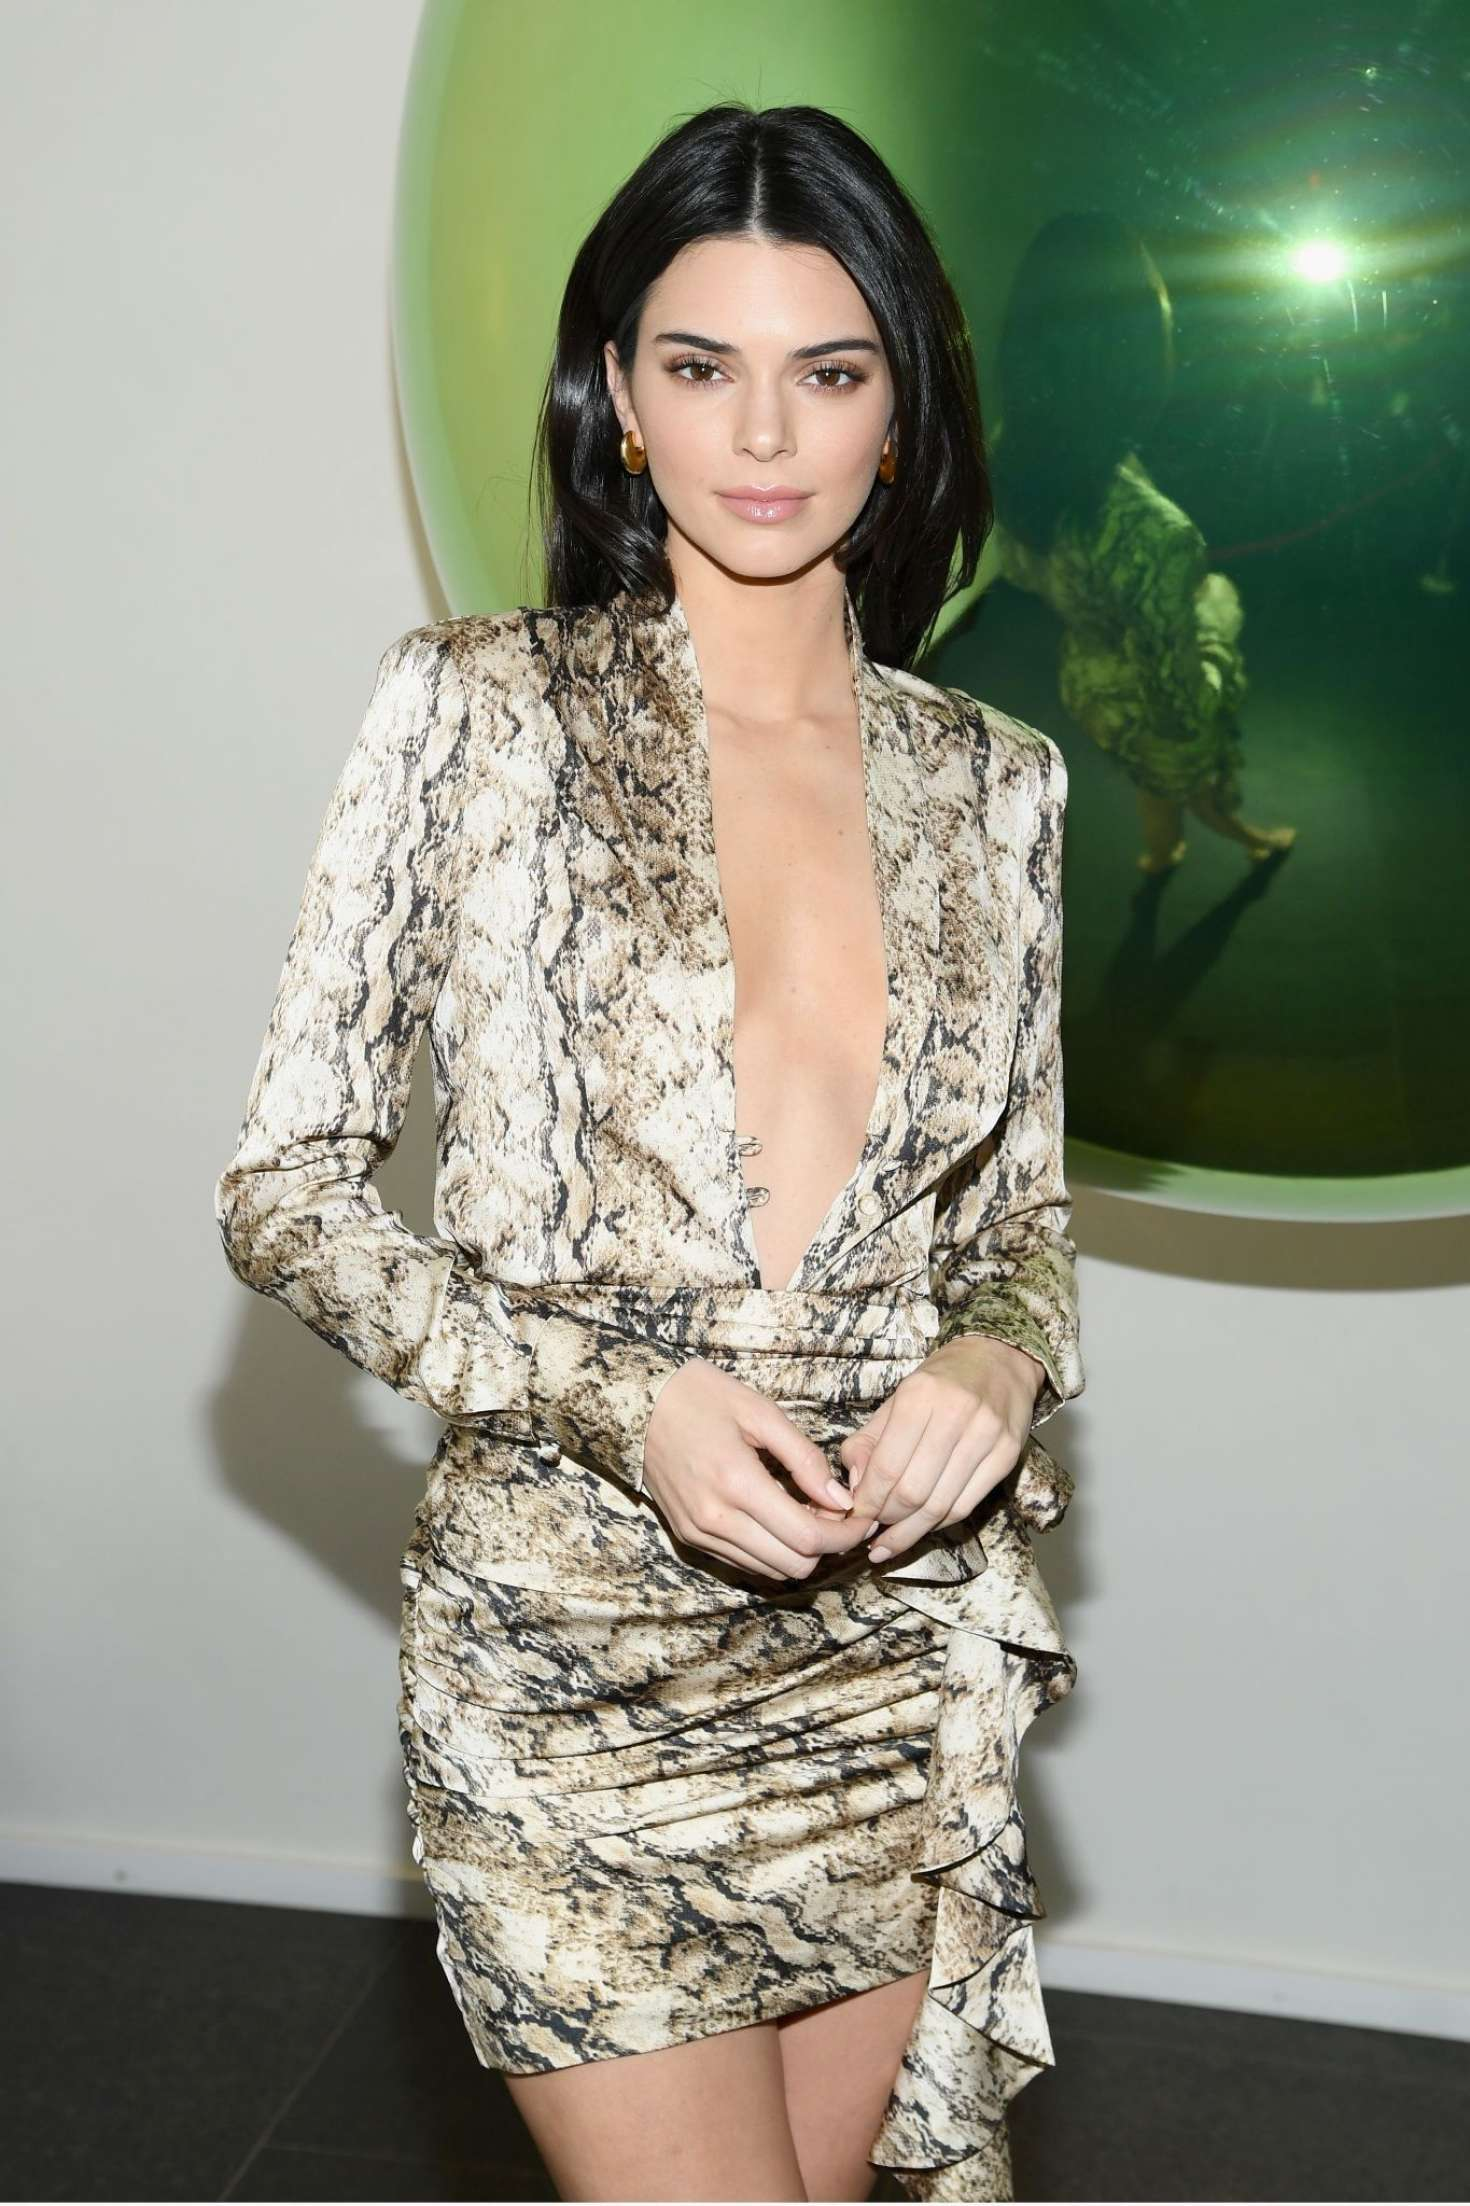 Kendall Jenner donning a shiny brown satin blouse with a snakeskin fabric, long sleeves and plunging neckline that almost went down to her waist